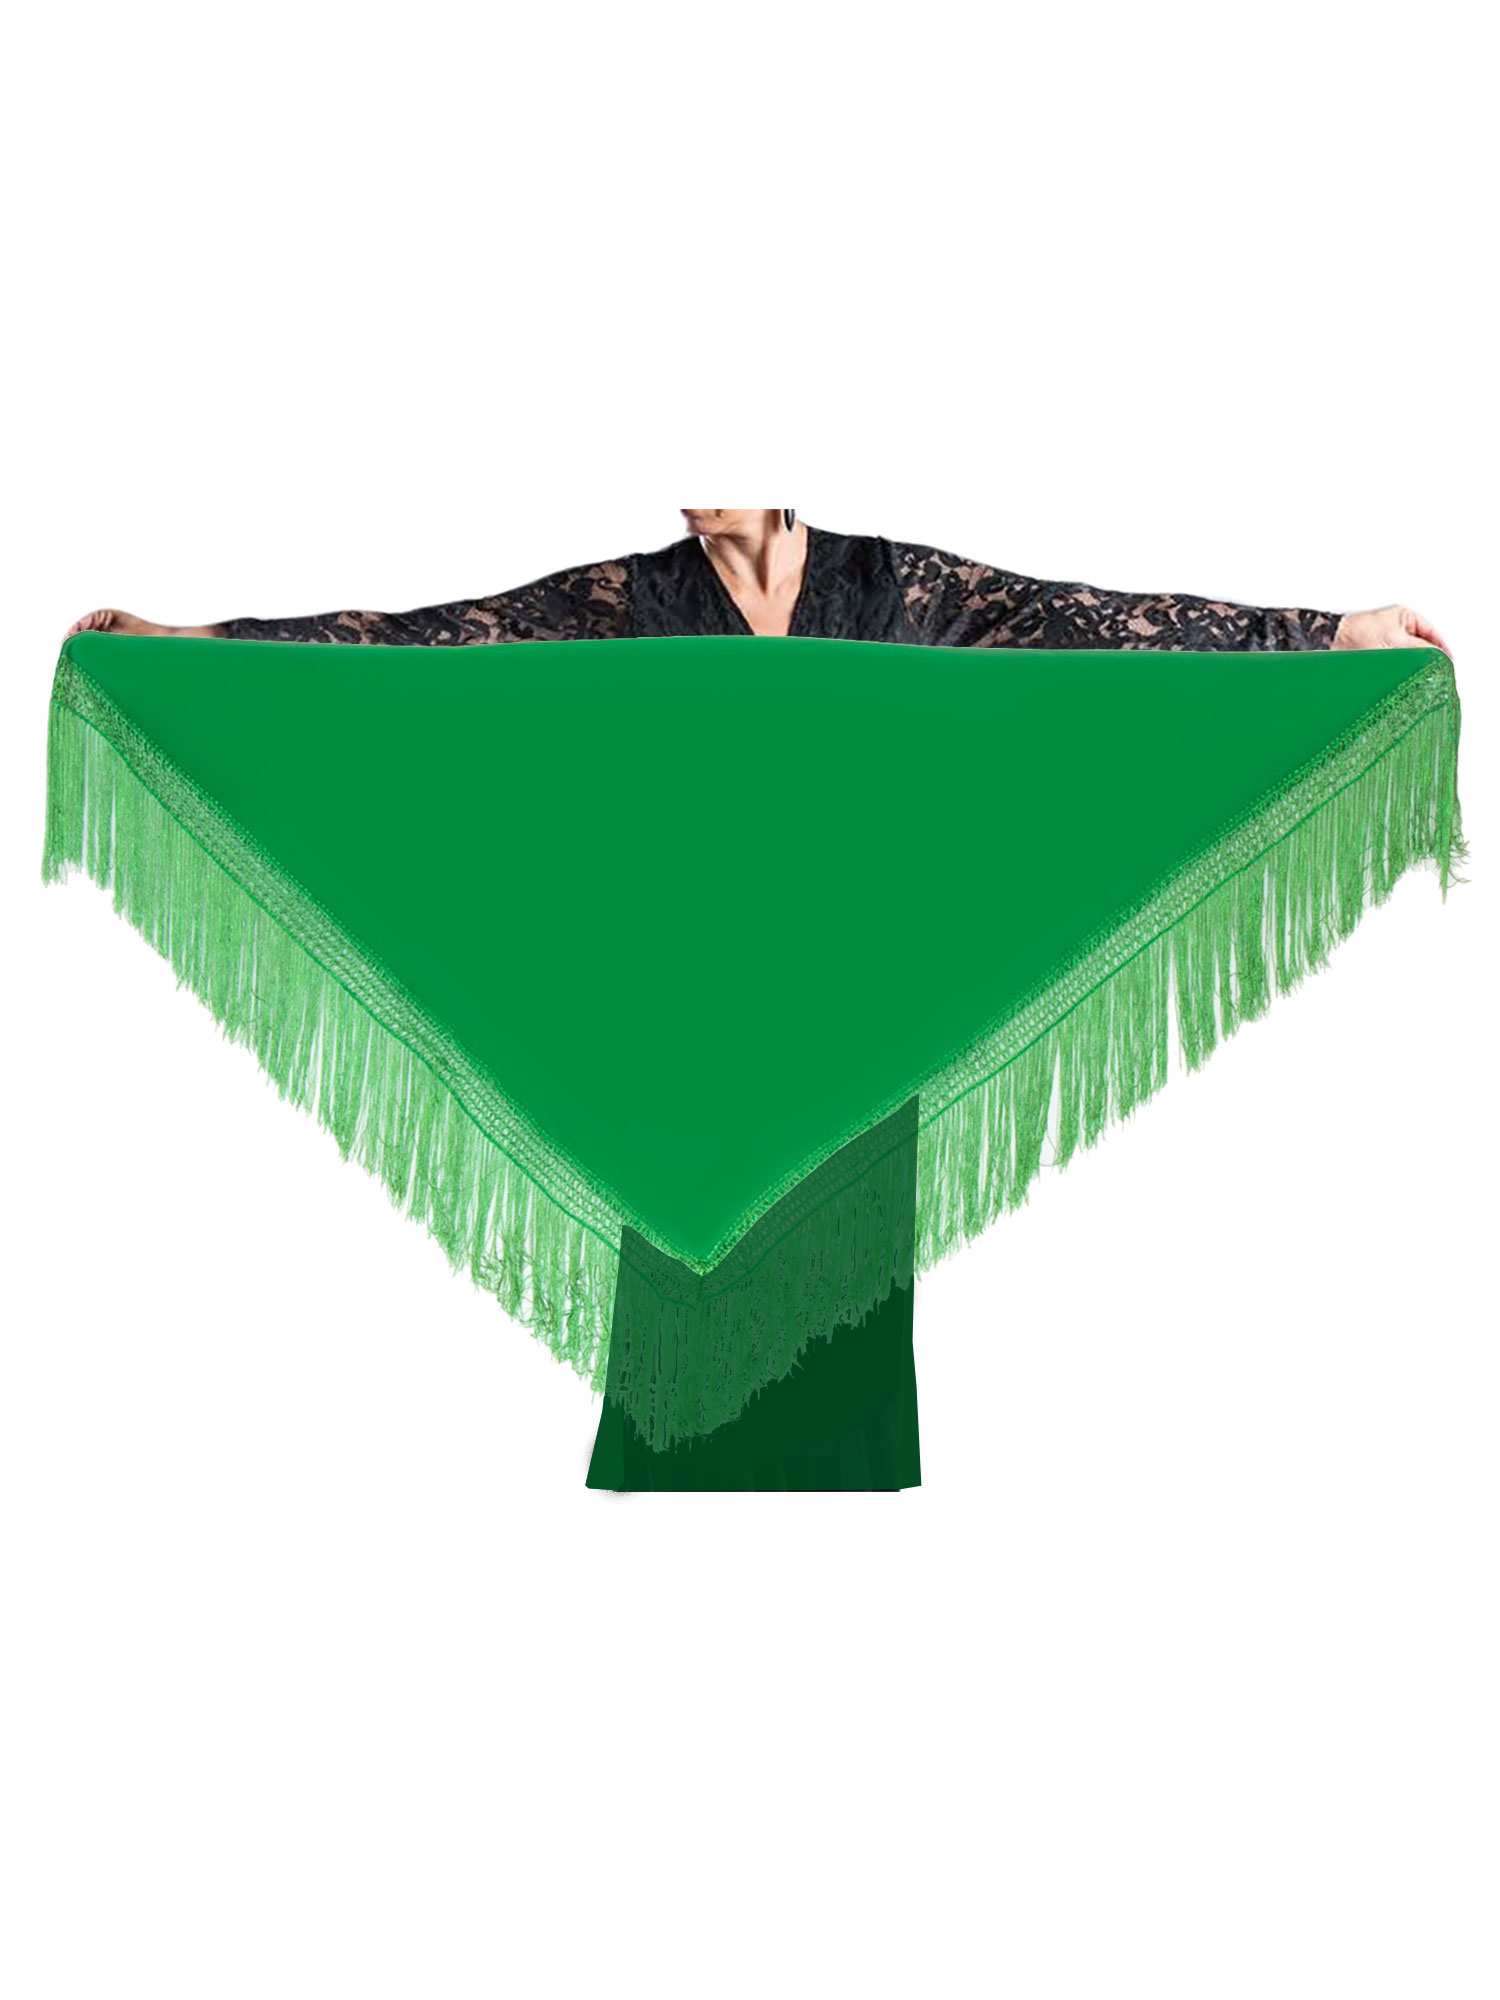 flamenco shawl green 150 x 70